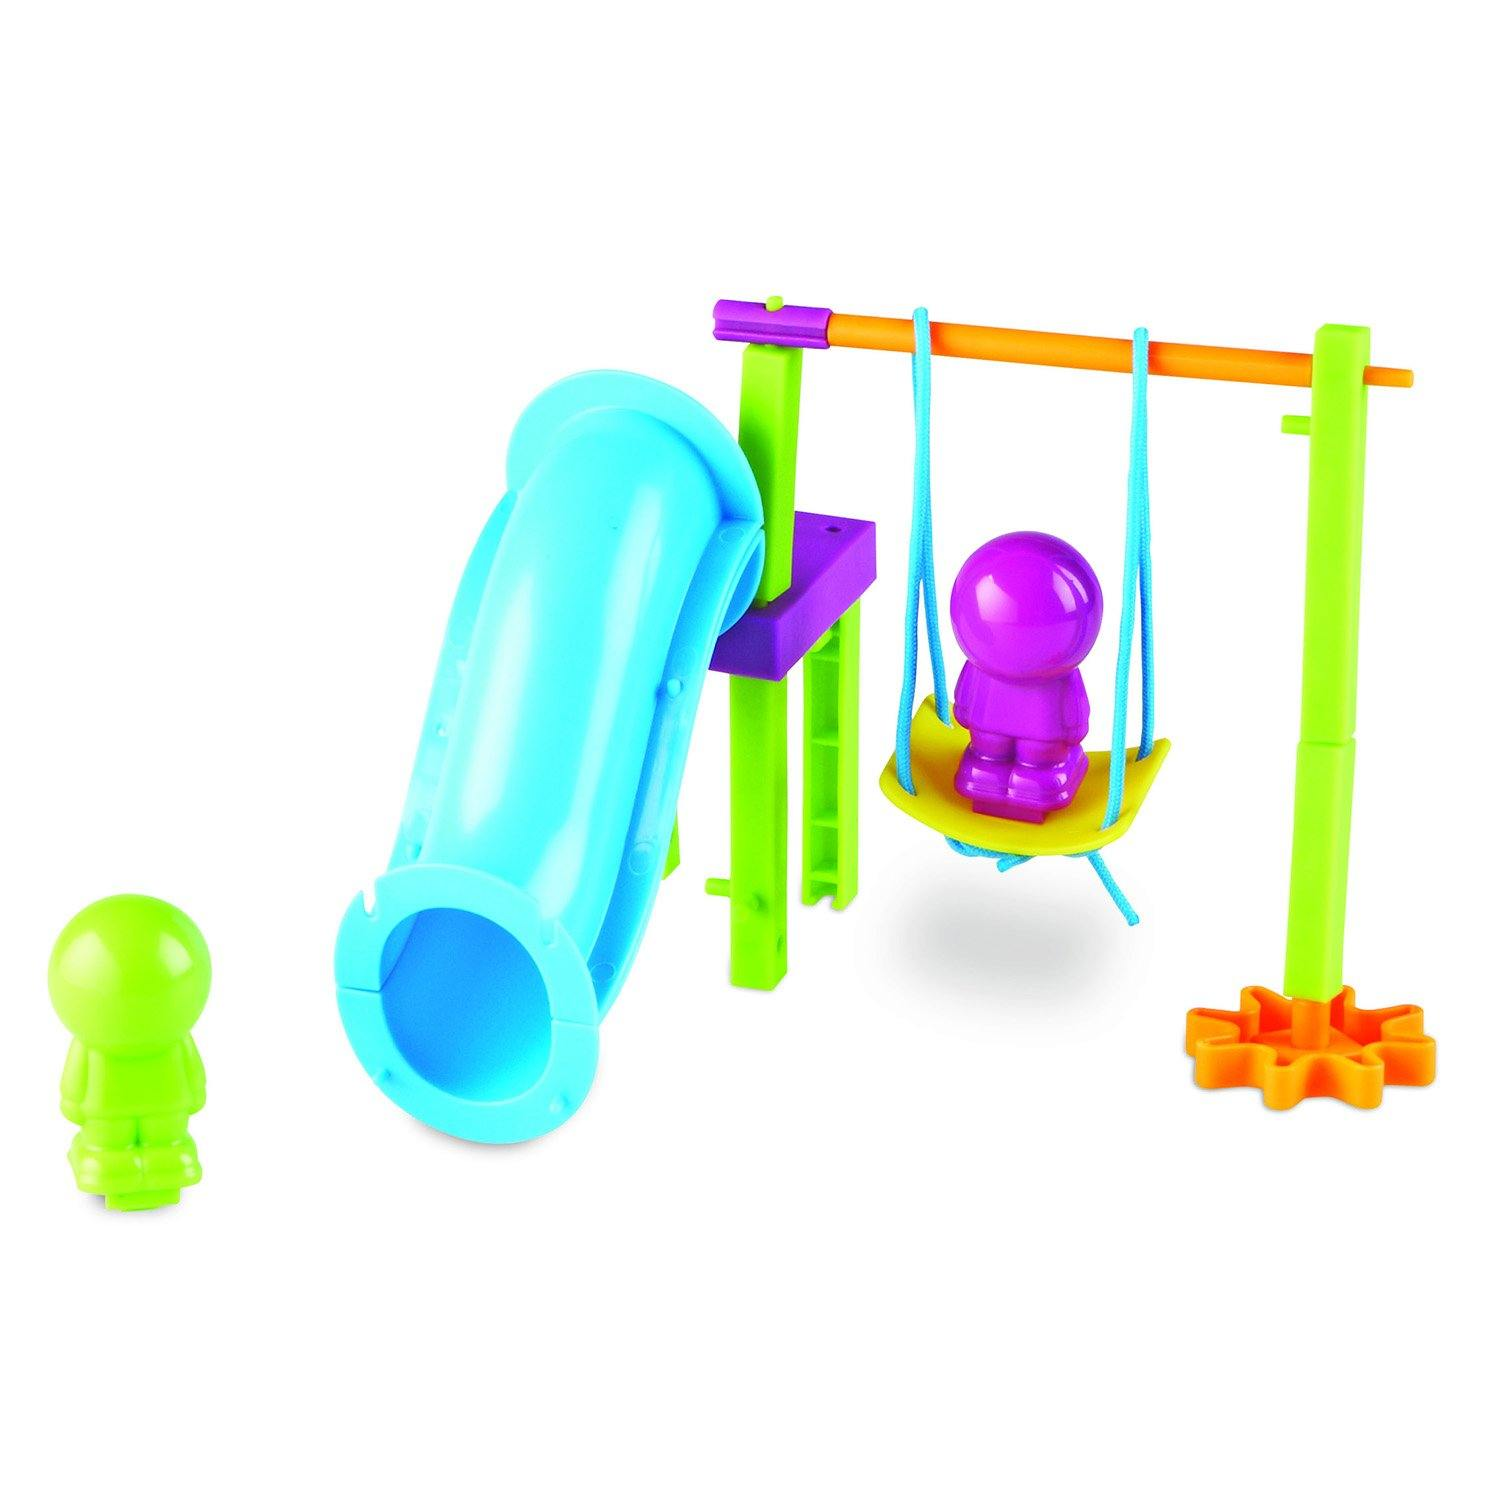 Toy swing and slide set